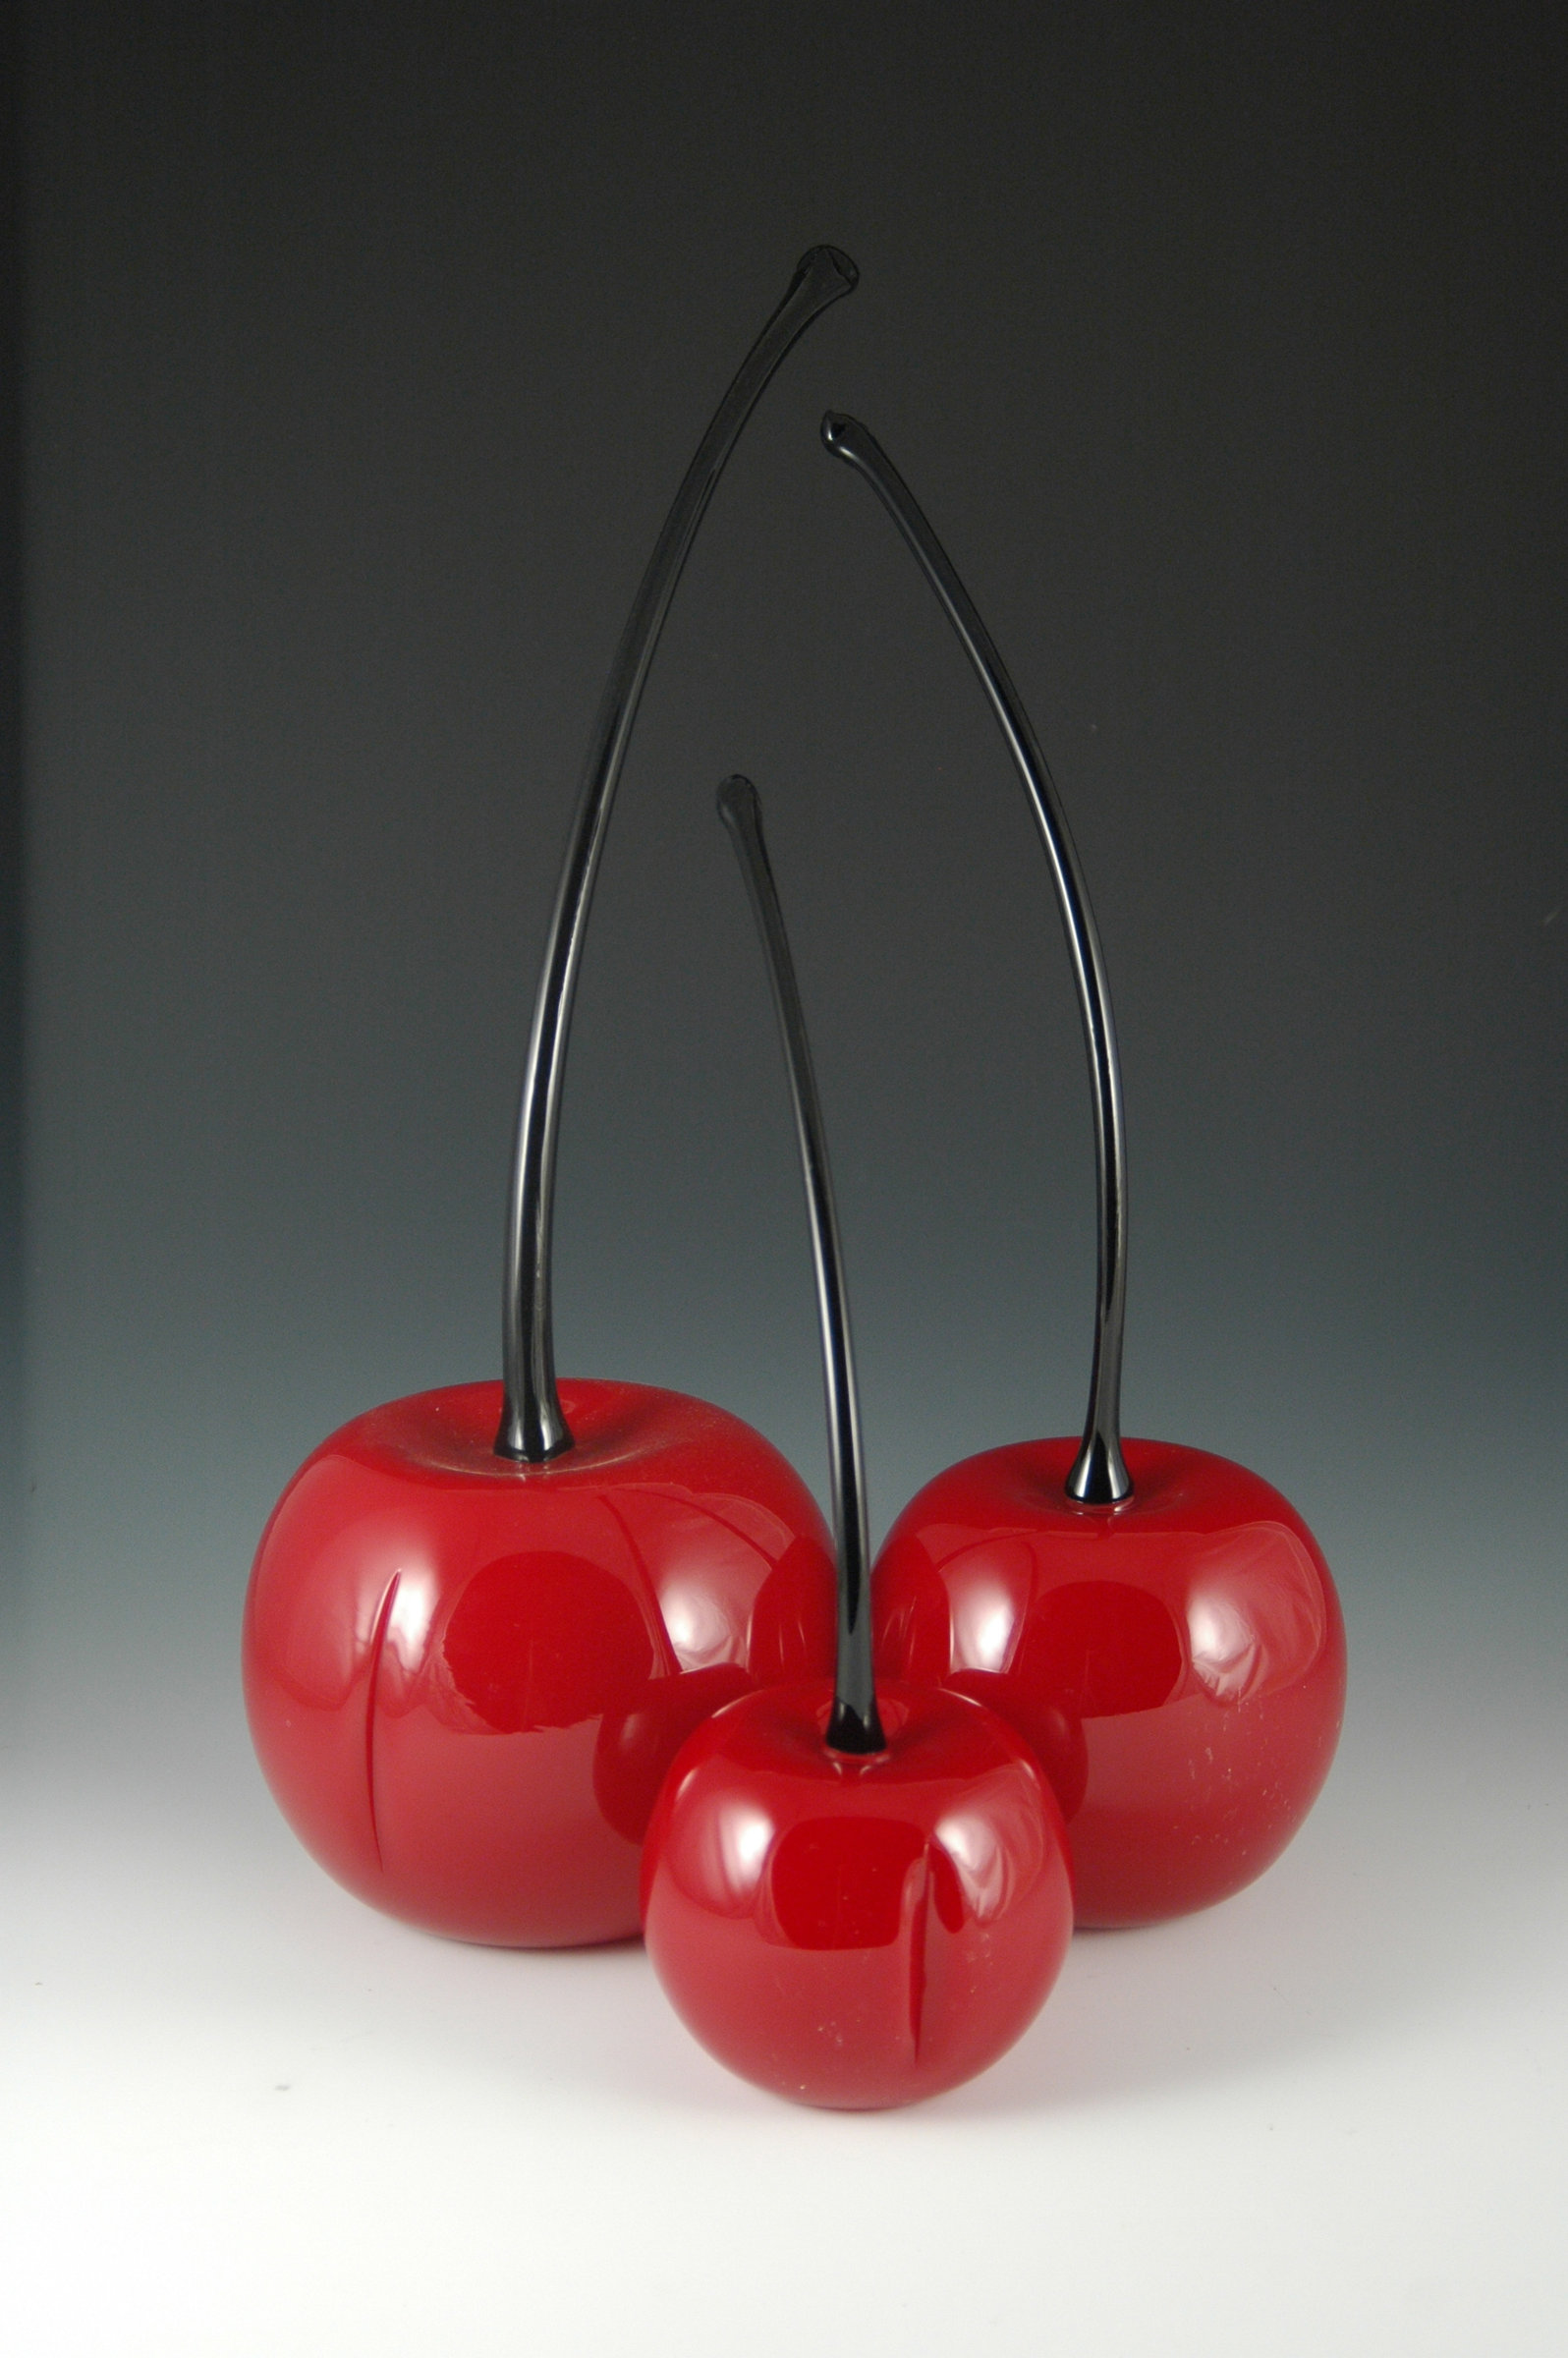 Red Cherries By Donald Carlson Art Glass Sculpture